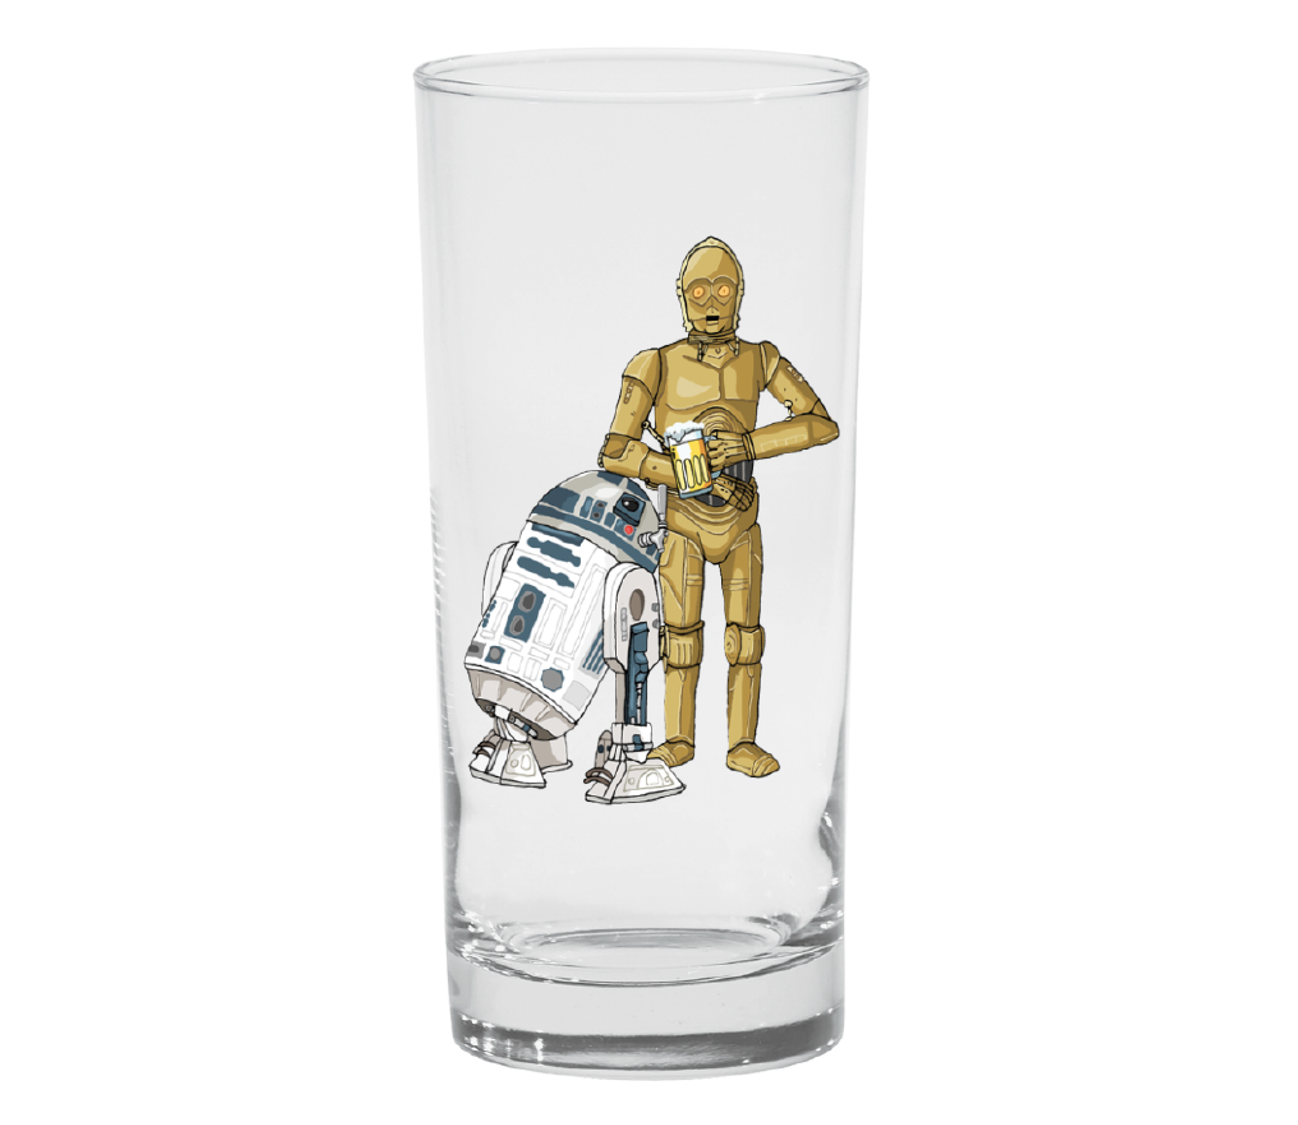 "Single Product Image ""C-3POur me a beer"" glass #21"